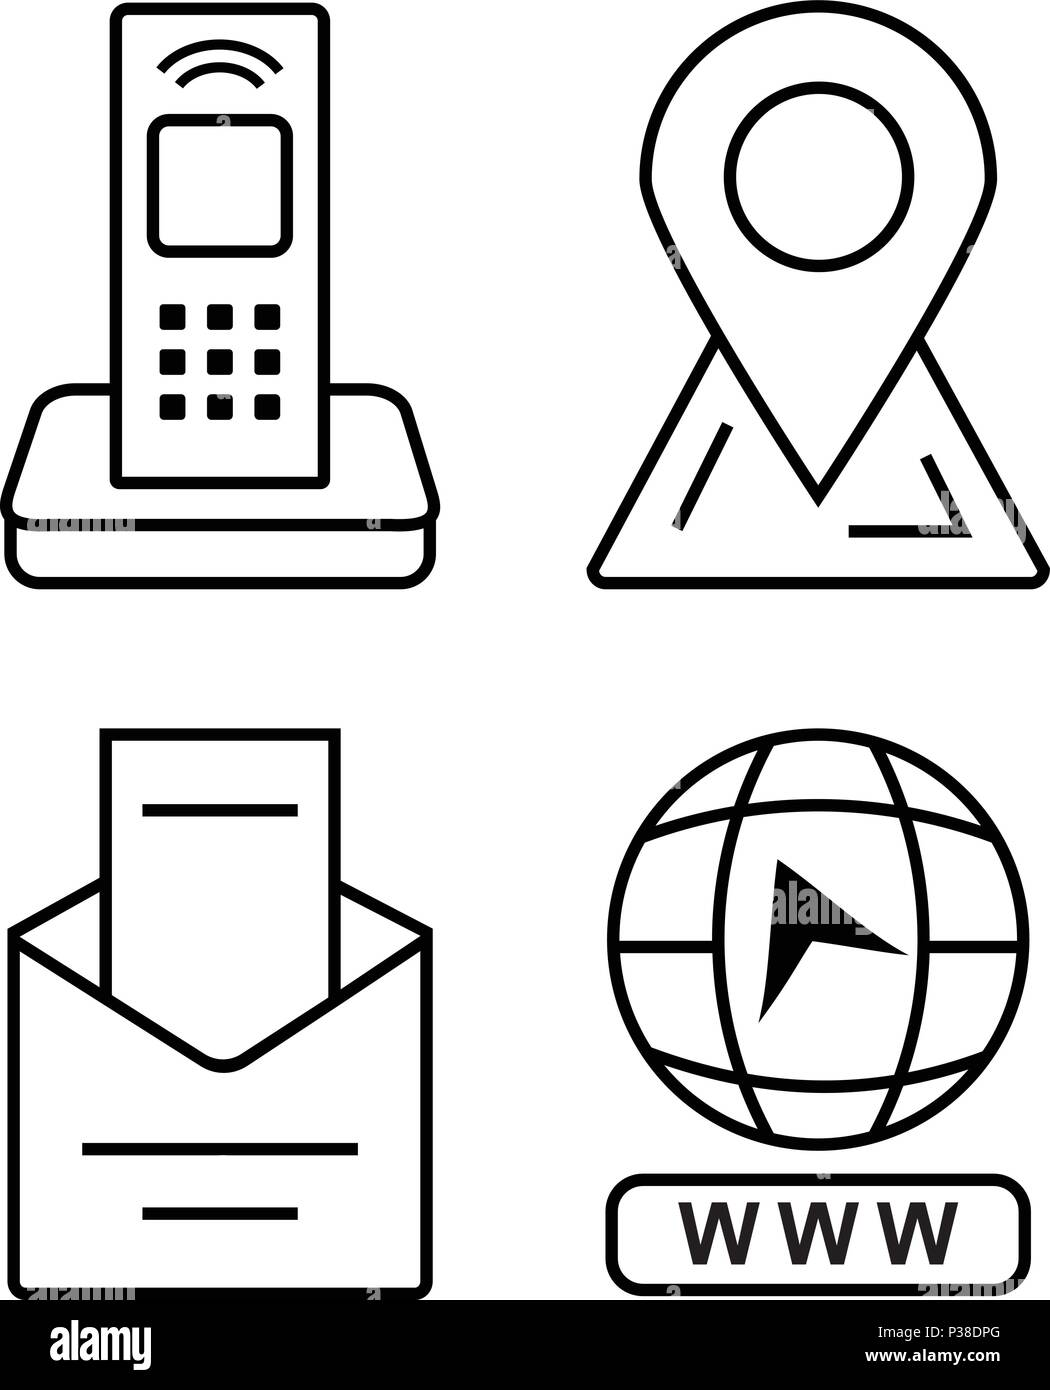 Thin Icons For Business Card Office Phone Marker On The Map Email